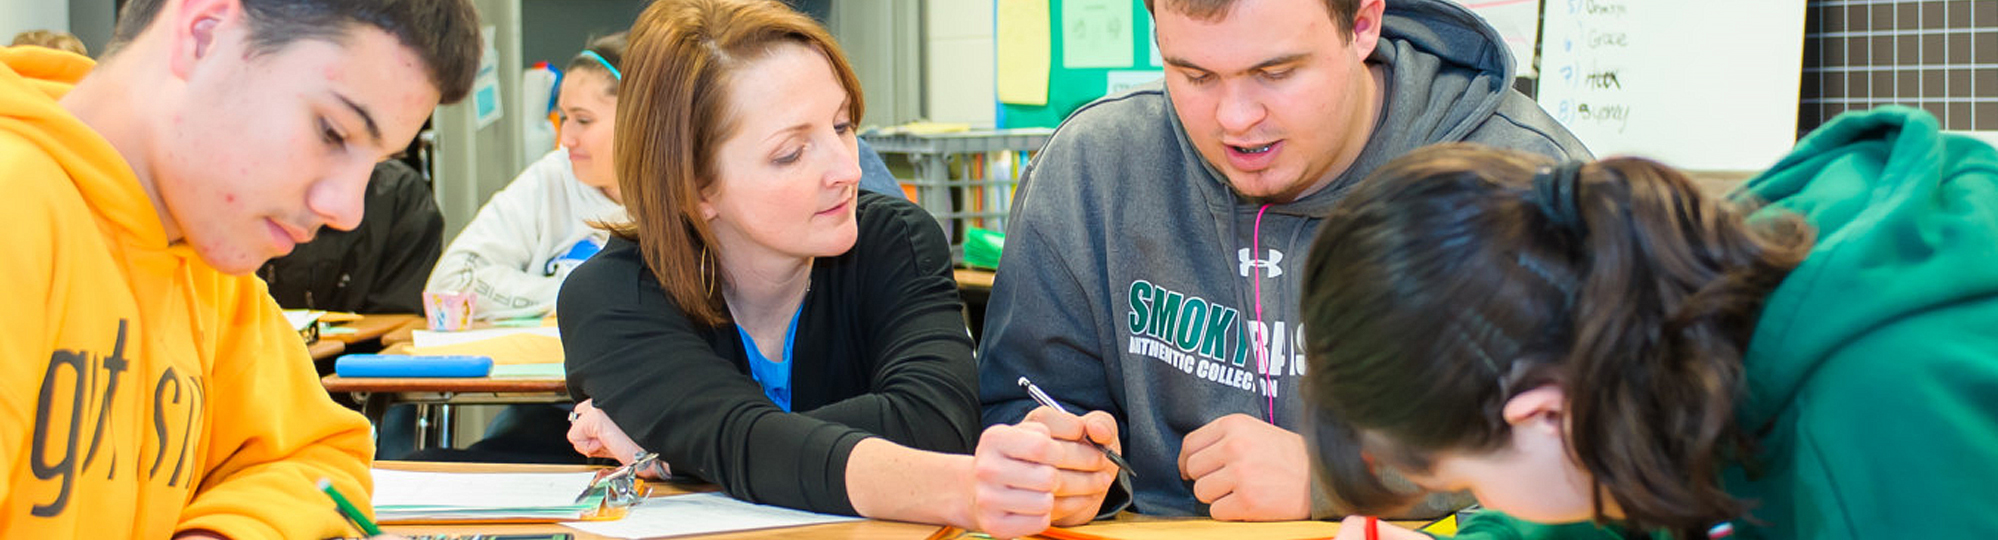 Woman teaching a male student